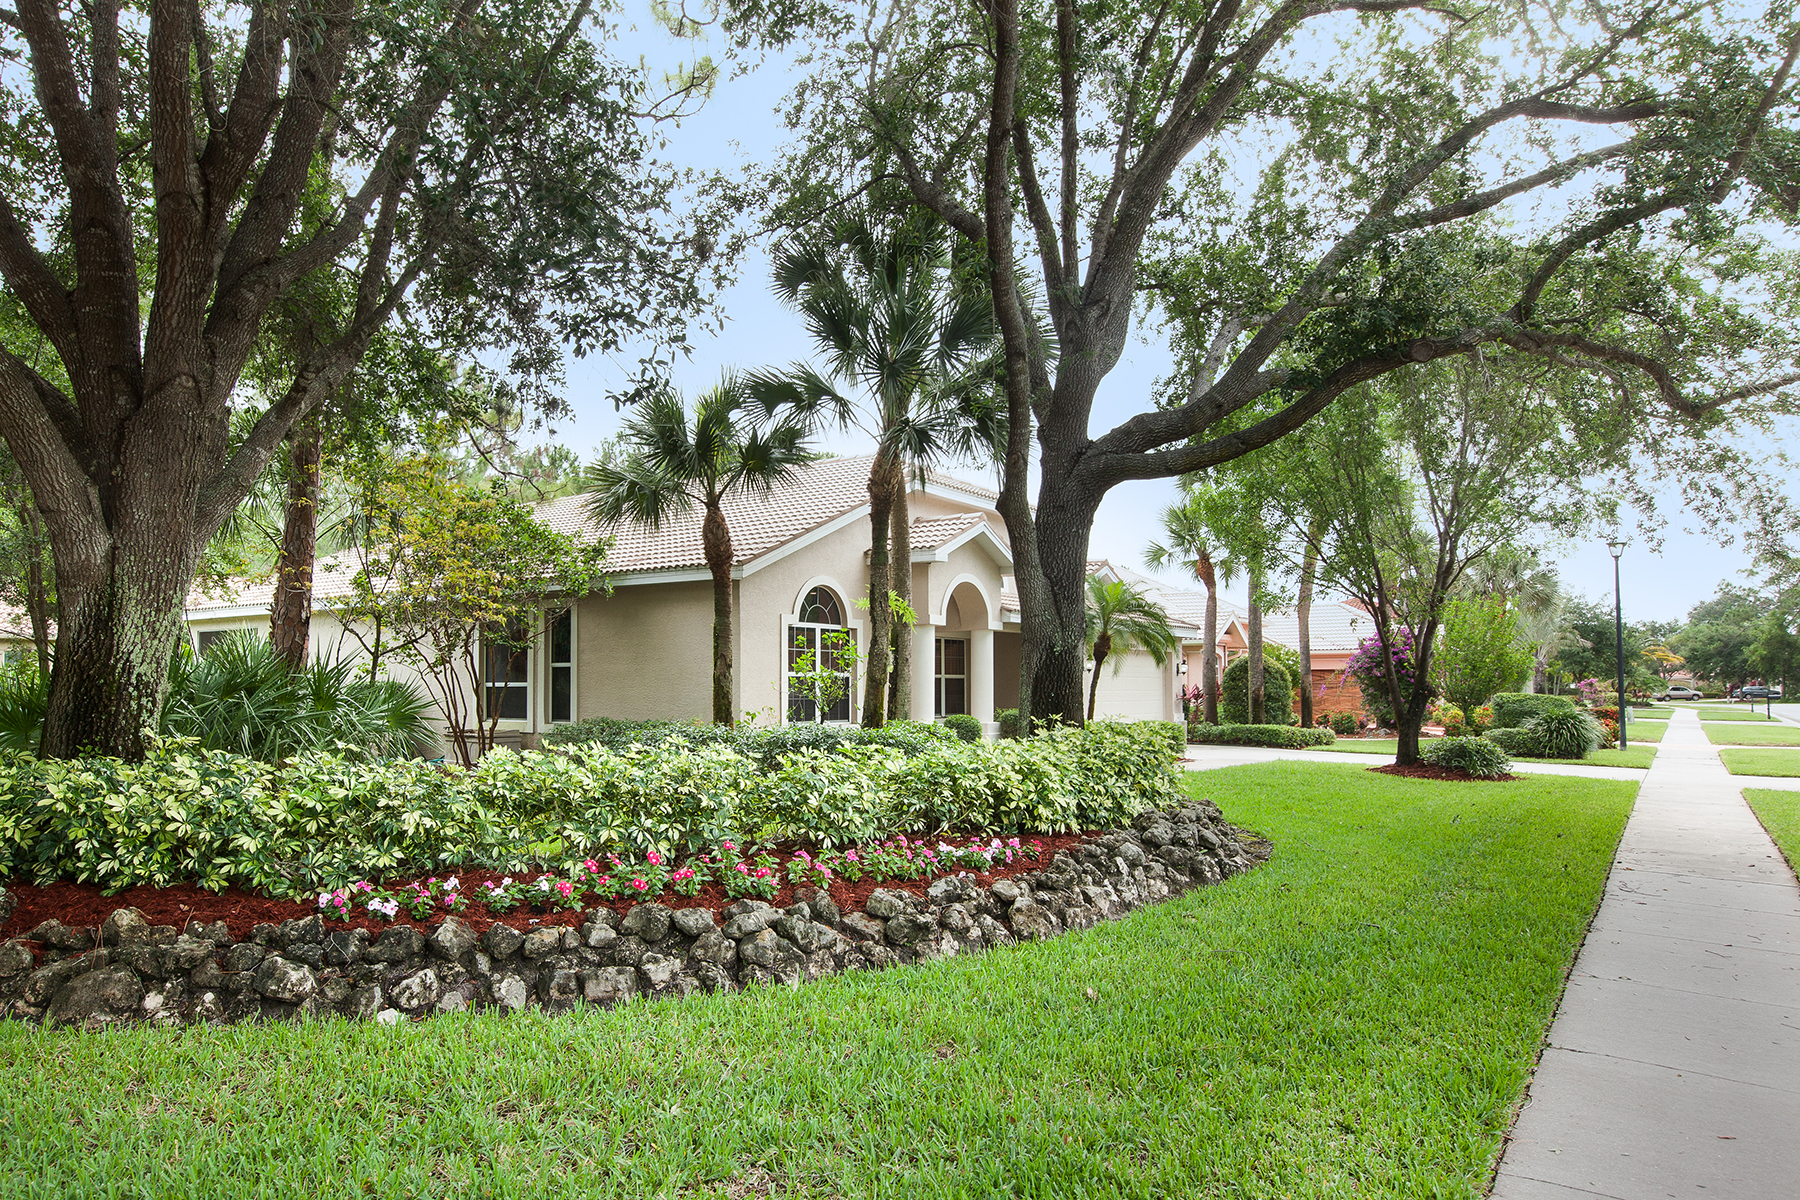 Single Family Home for Sale at WILSHIRE LAKES 8101 Lowbank Dr Naples, Florida 34109 United States